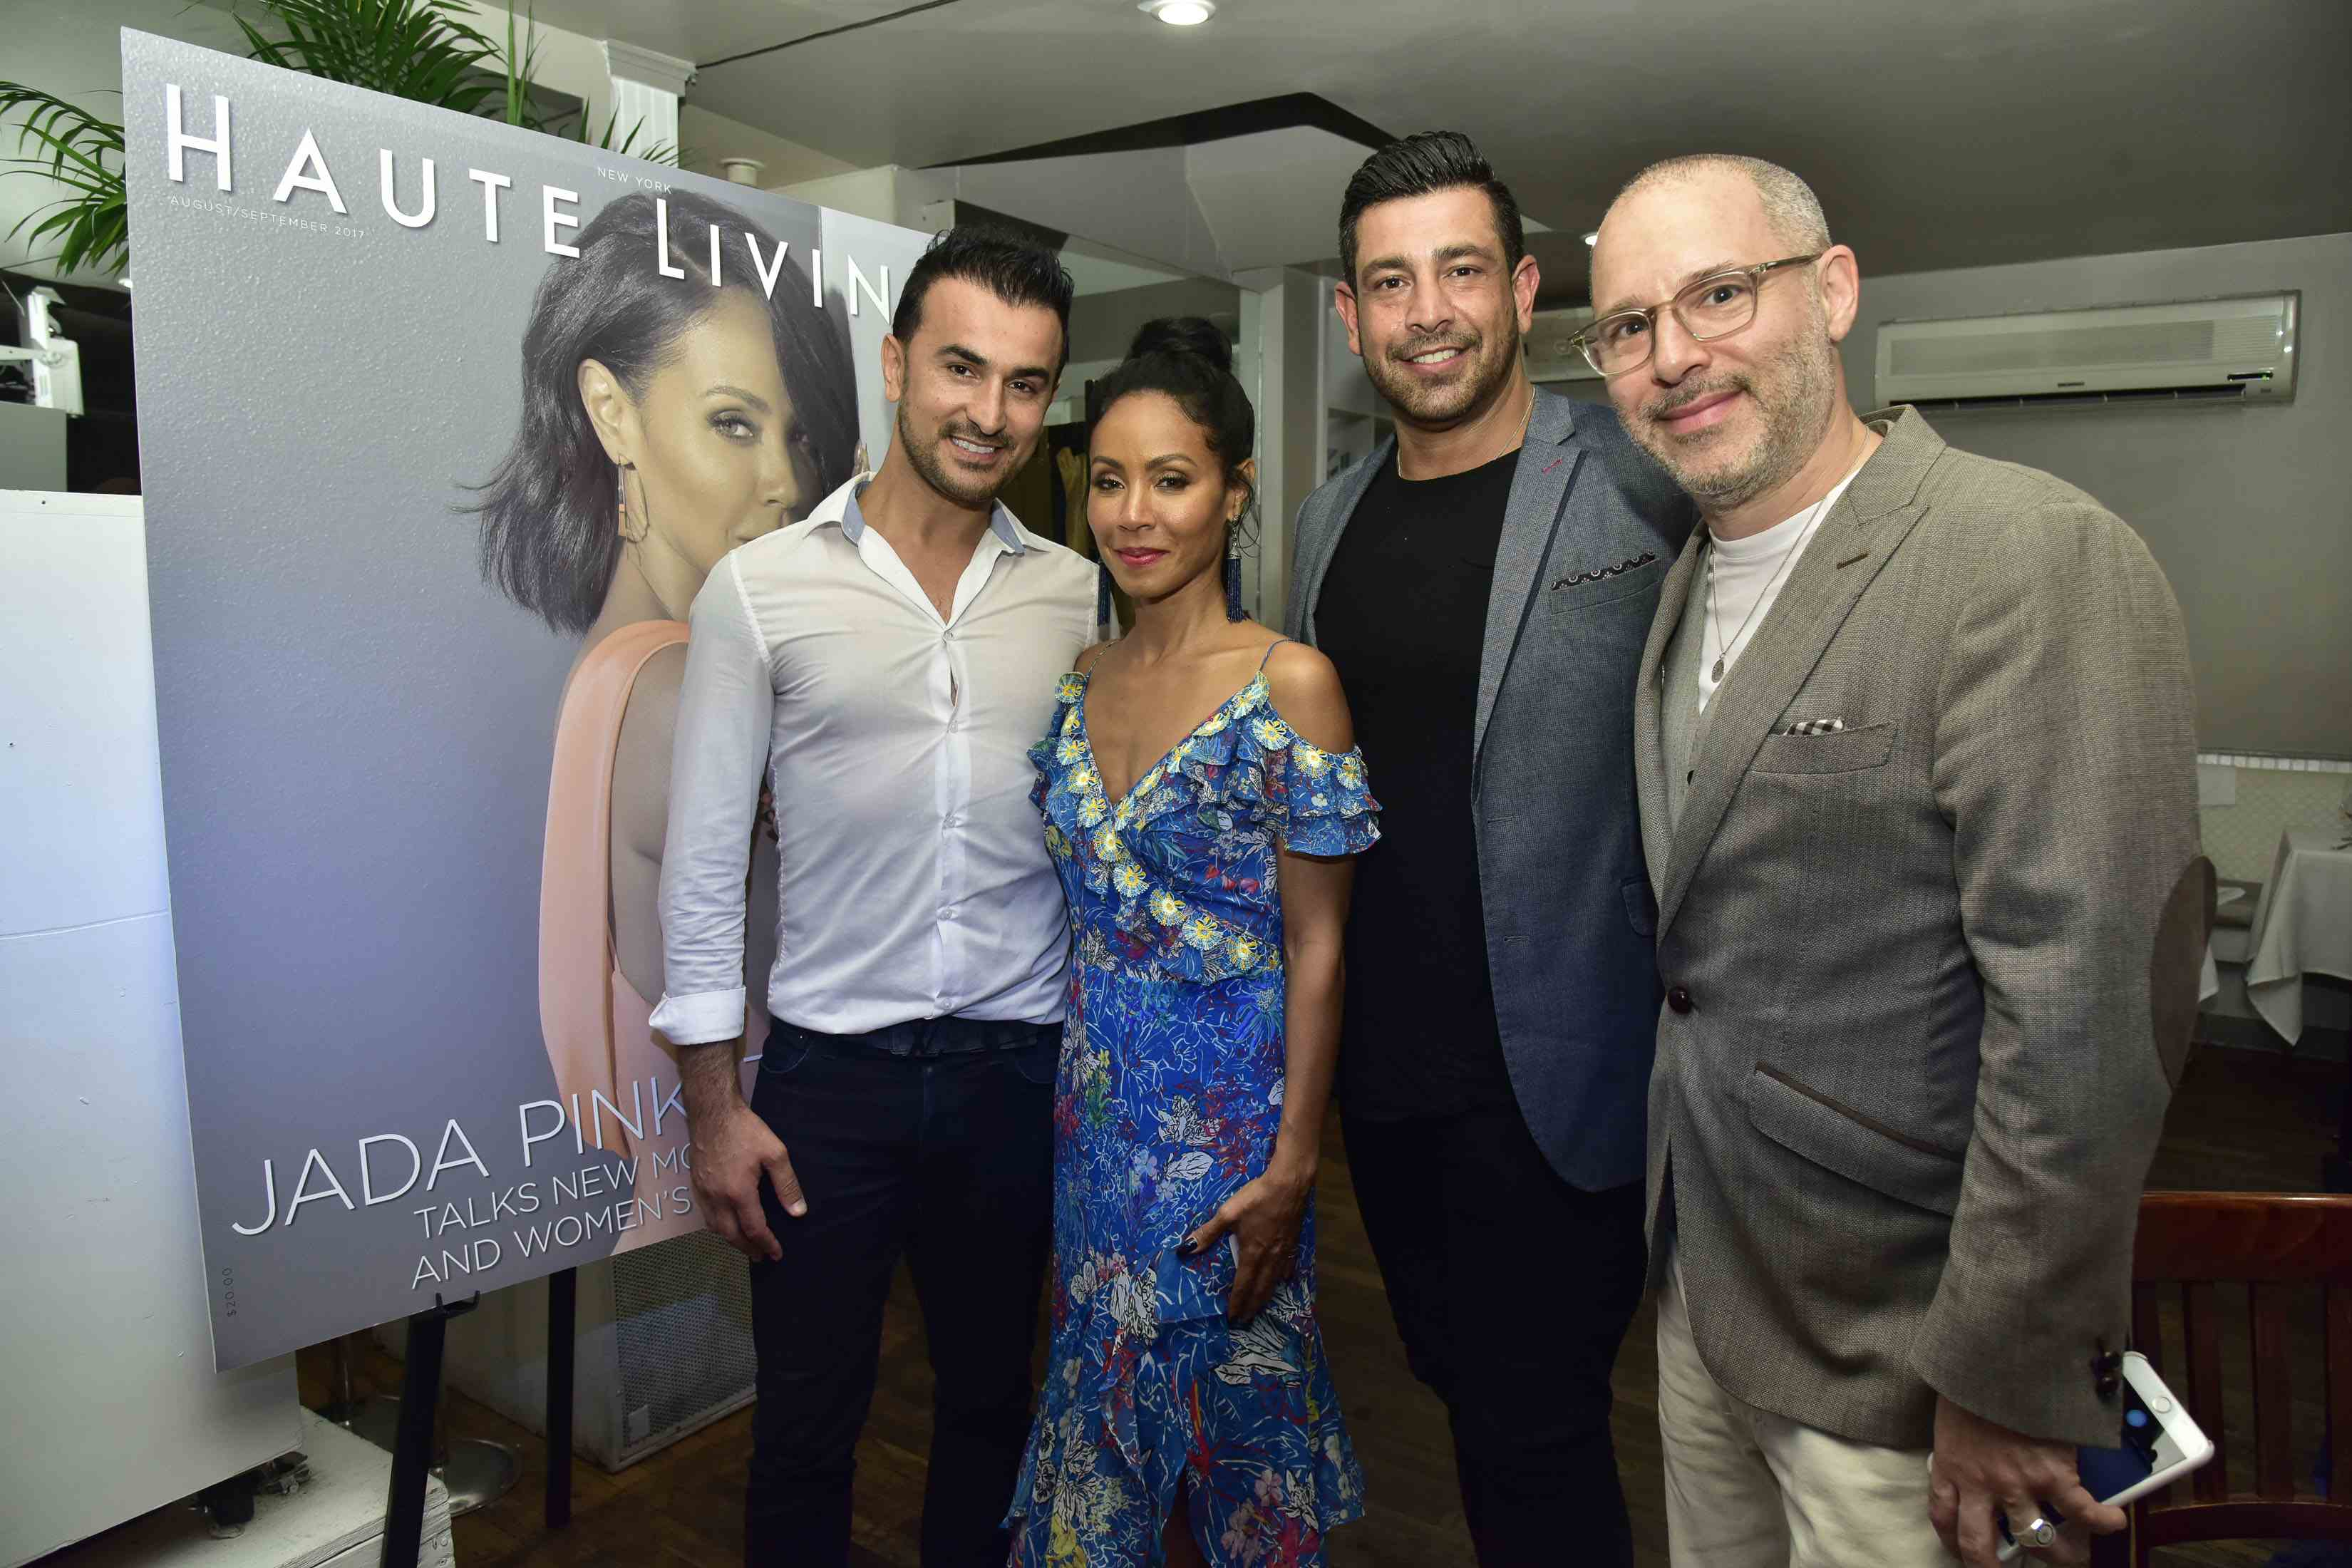 Zach Erdem, Jada Pinkett Smith, Richie Husein and Paul Gerben